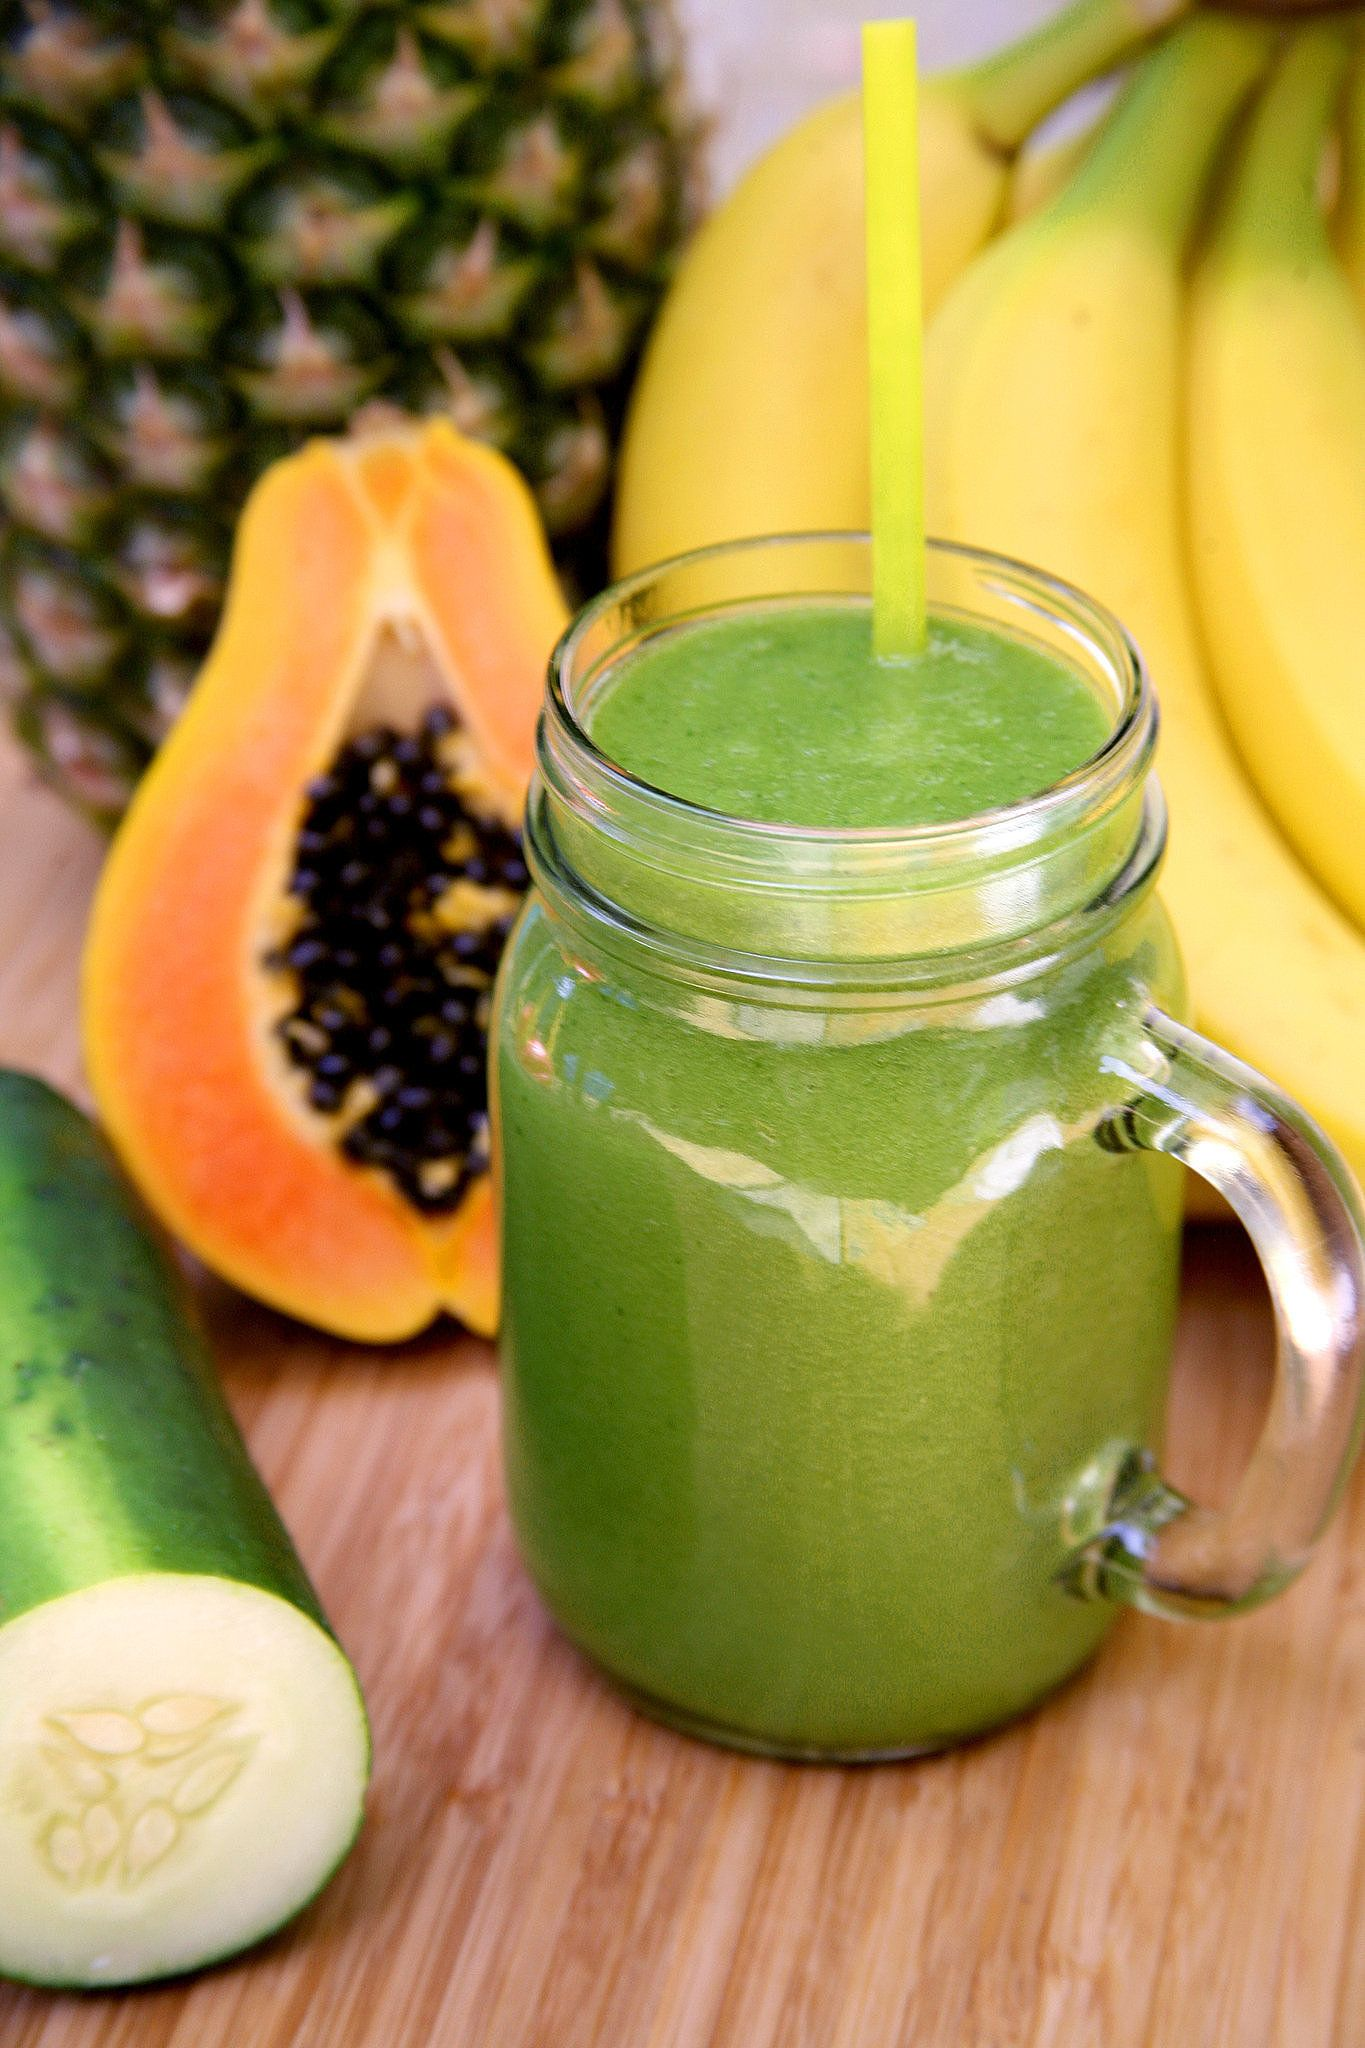 Debloating Papaya Smoothie and others smoothies